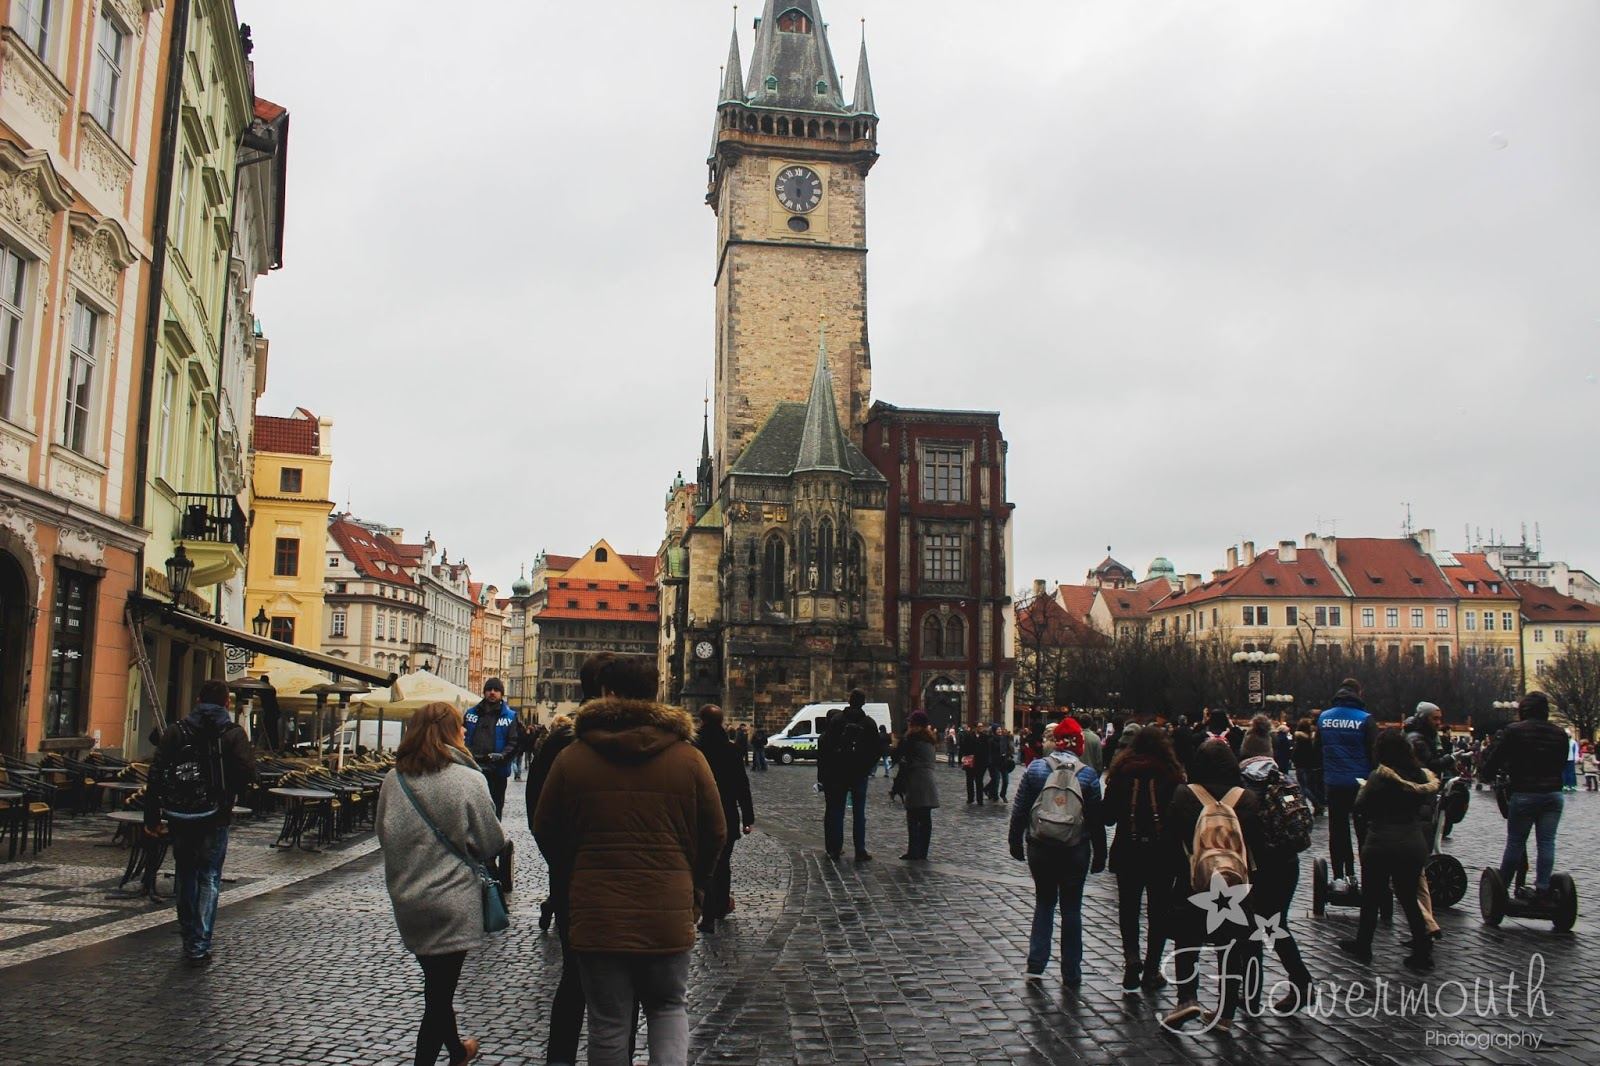 Astronomical clock in Prague city square